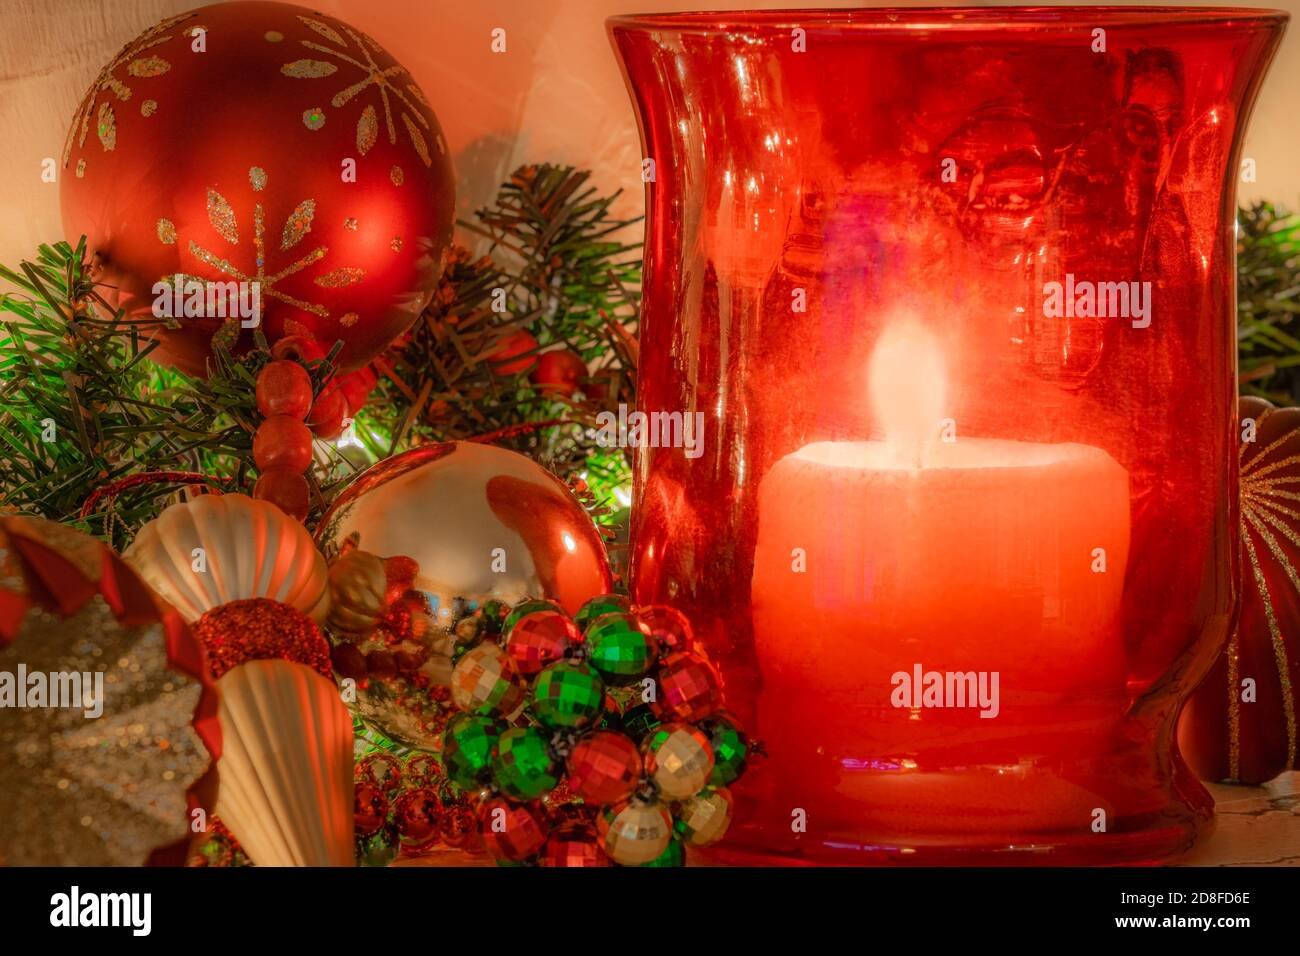 A Lit Candle And Christmas Ornaments High Resolution Stock Photography And Images Alamy